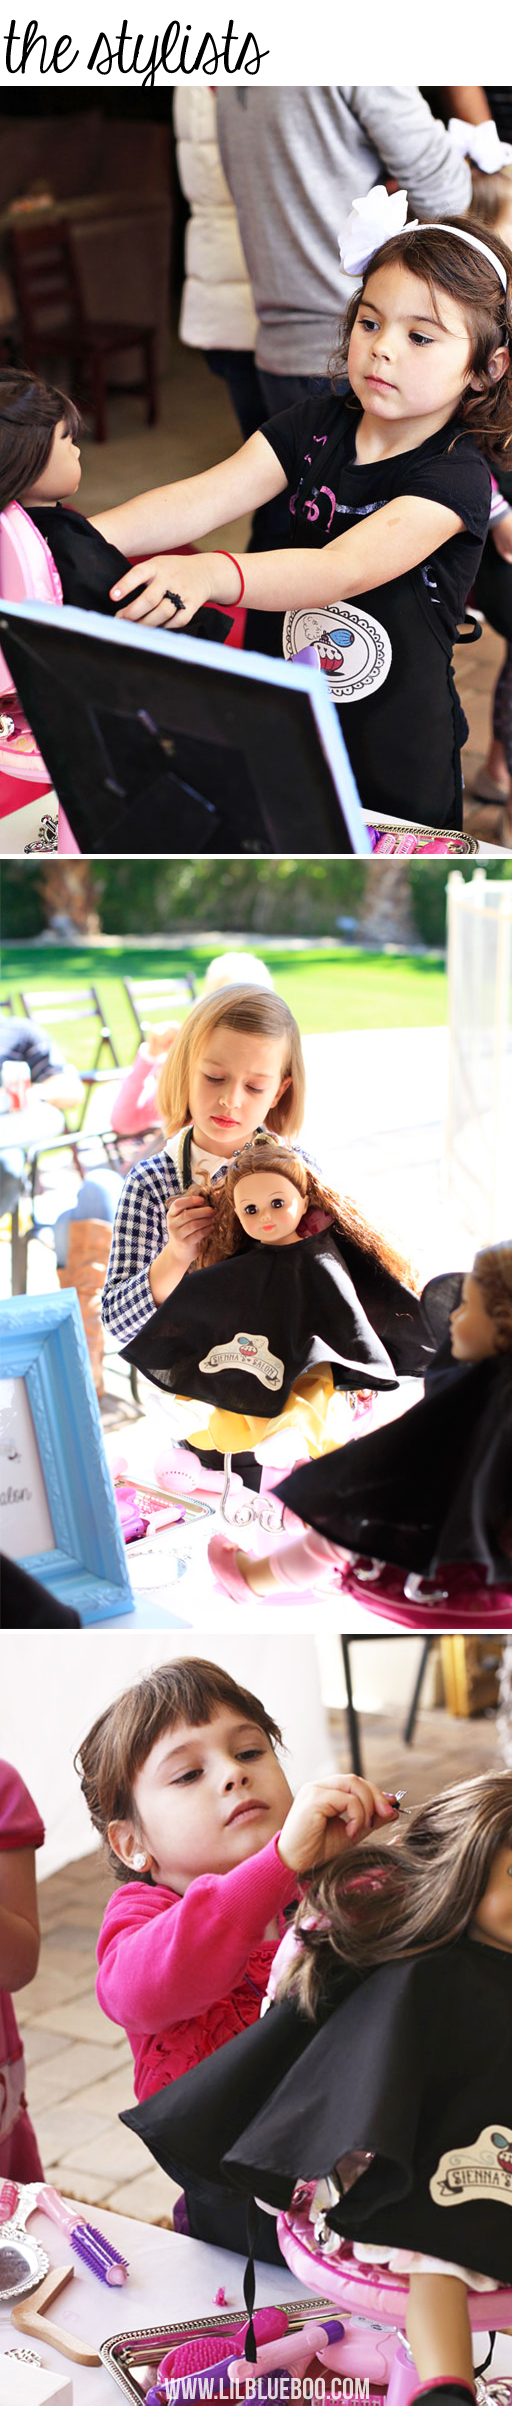 Stylist Party (American Girl Sized Salon)  via lilblueboo.com #americangirl #party #diy